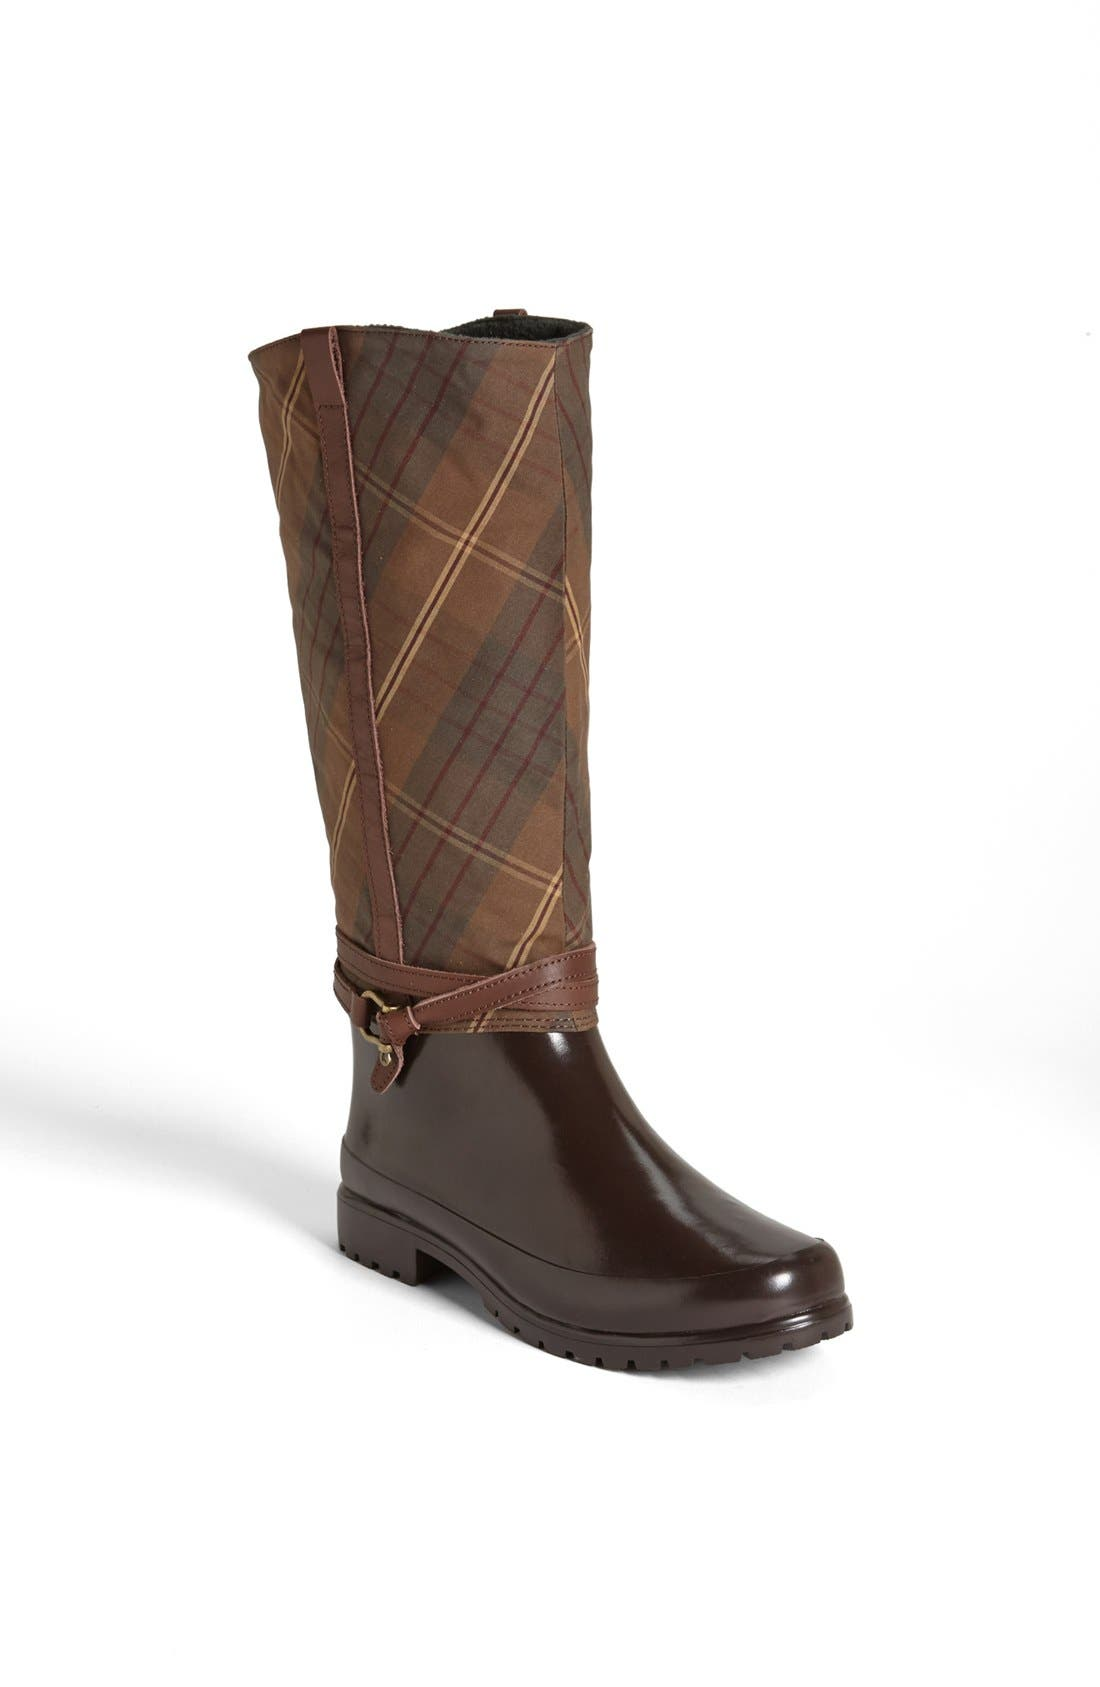 Alternate Image 1 Selected - Sperry Top-Sider® 'Everham' Rain Boot (Women) (Online Only)